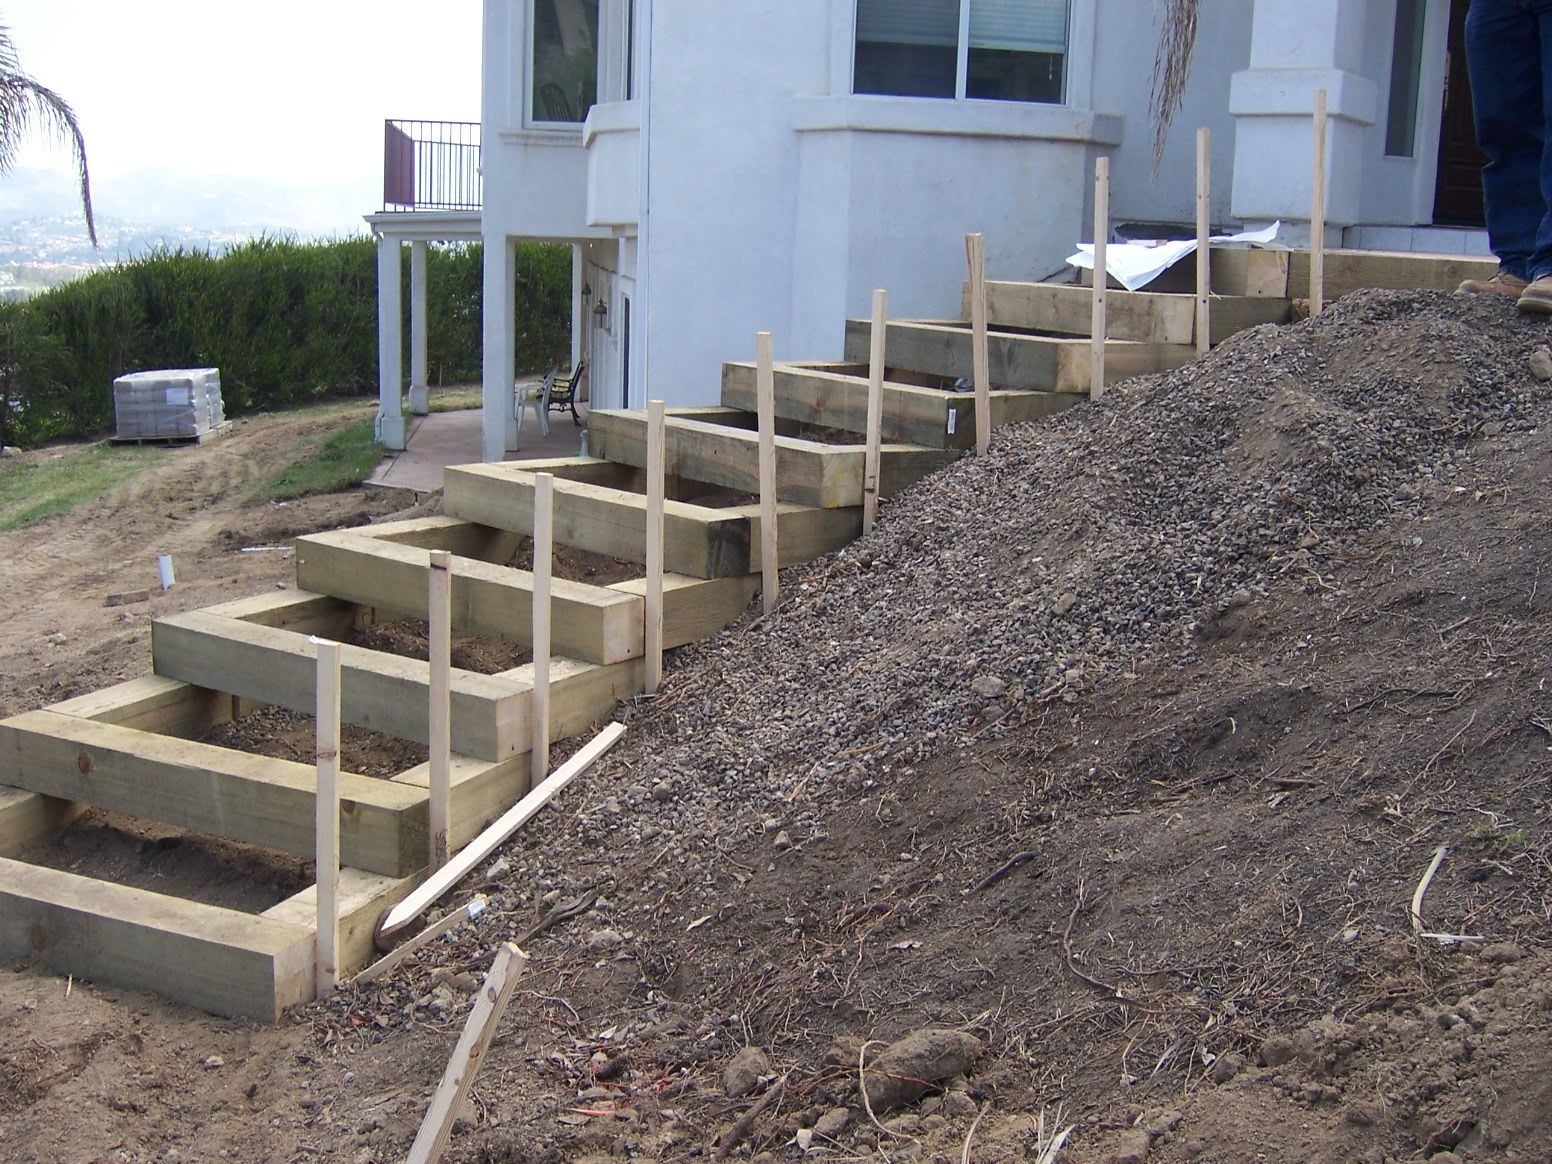 Landscaping Ideas Stair Here Are Some Photos Of Landscape Timbers Stairs From One My Jobs